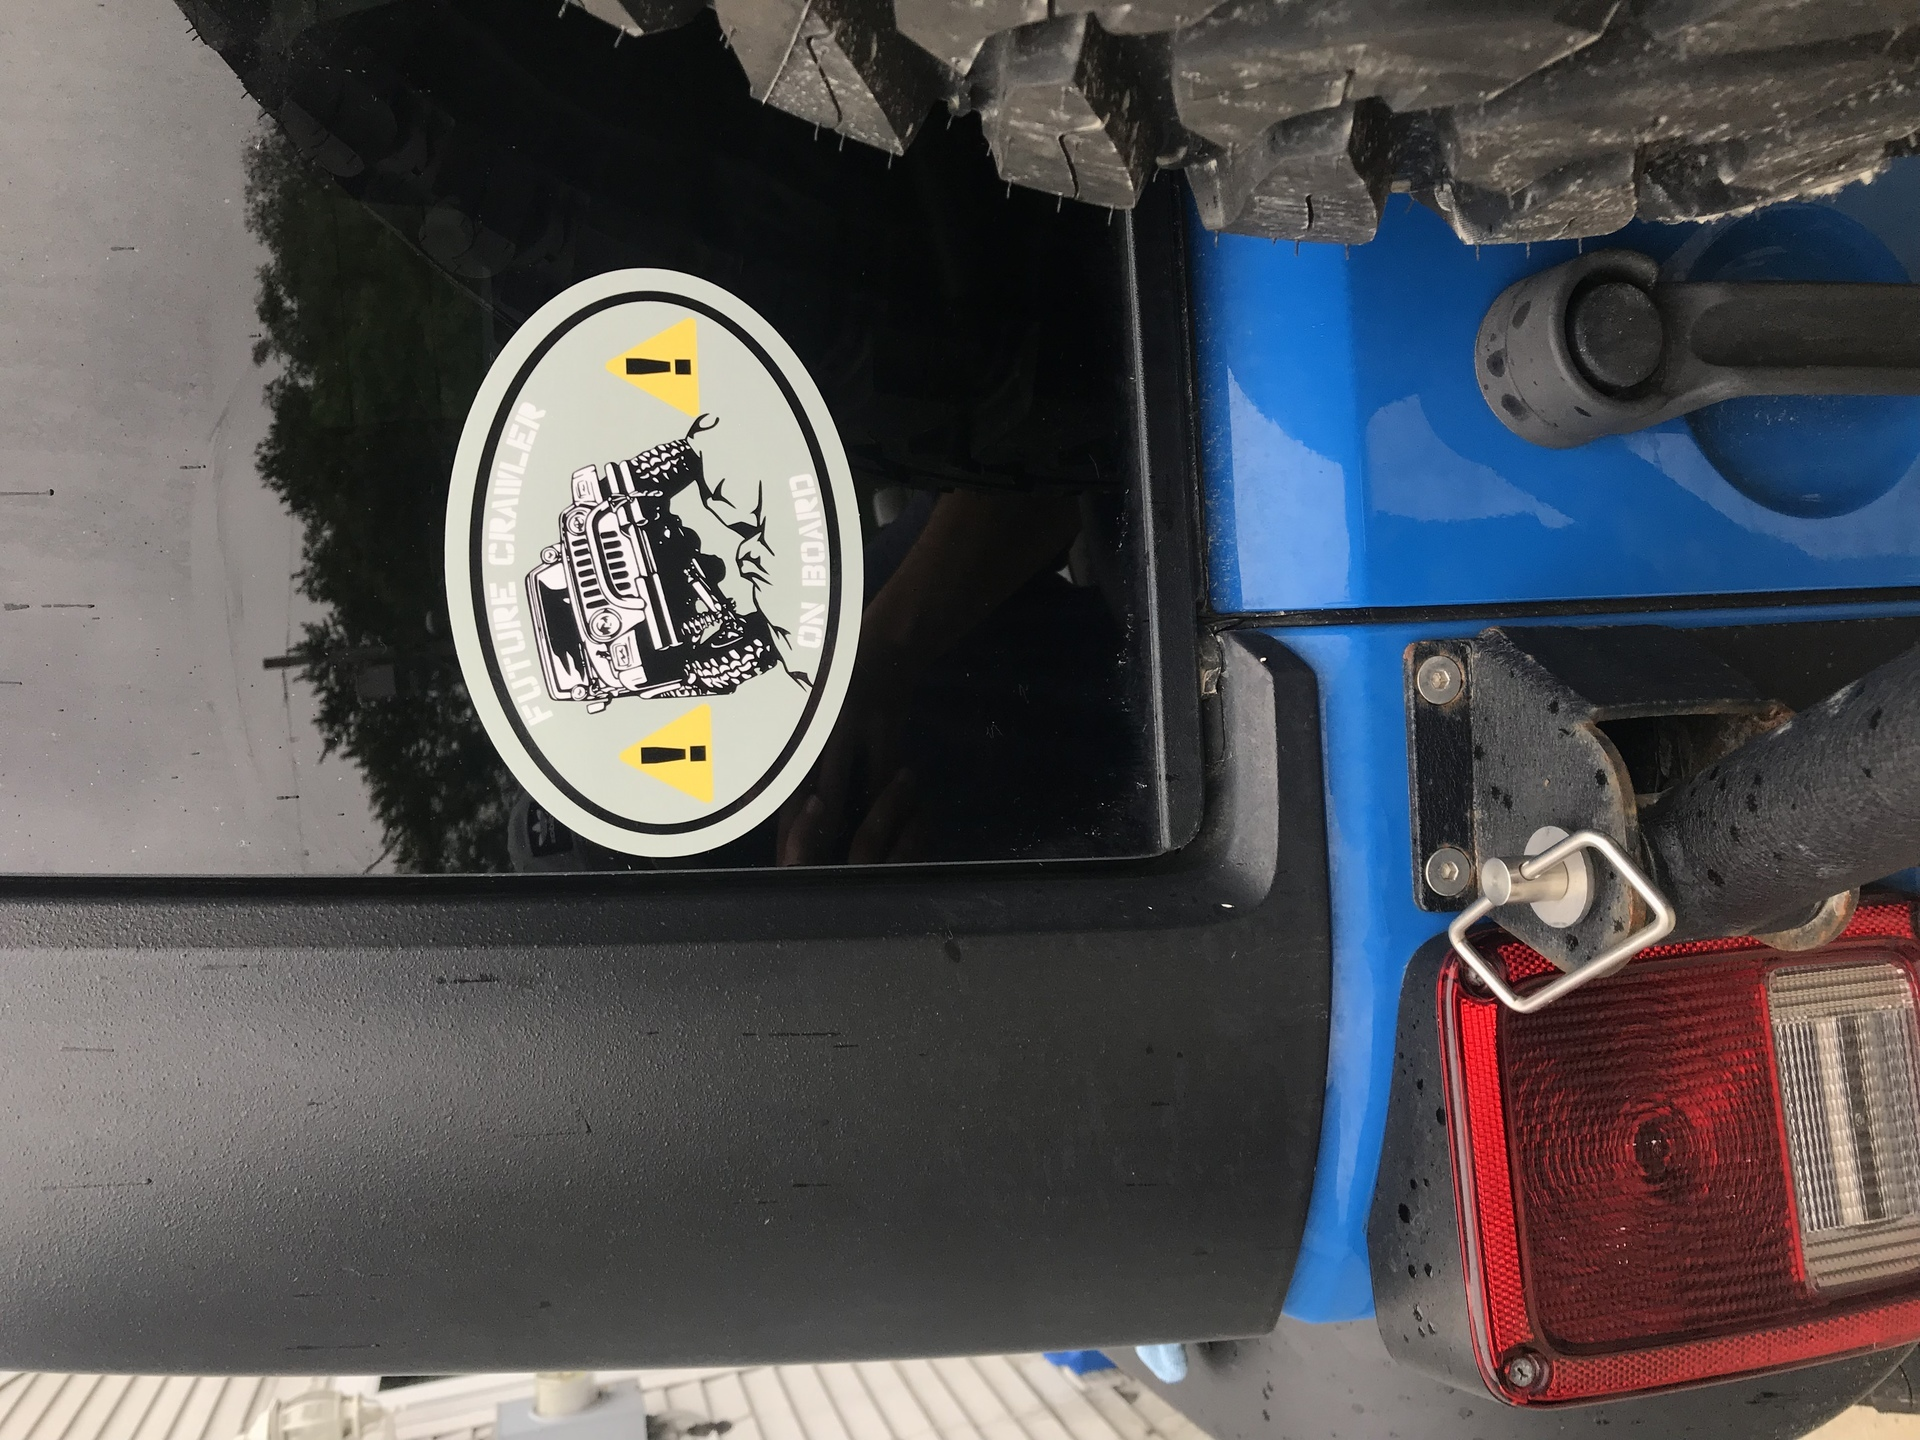 Matthew's photograph of their Custom Oval Sticker with Clipart